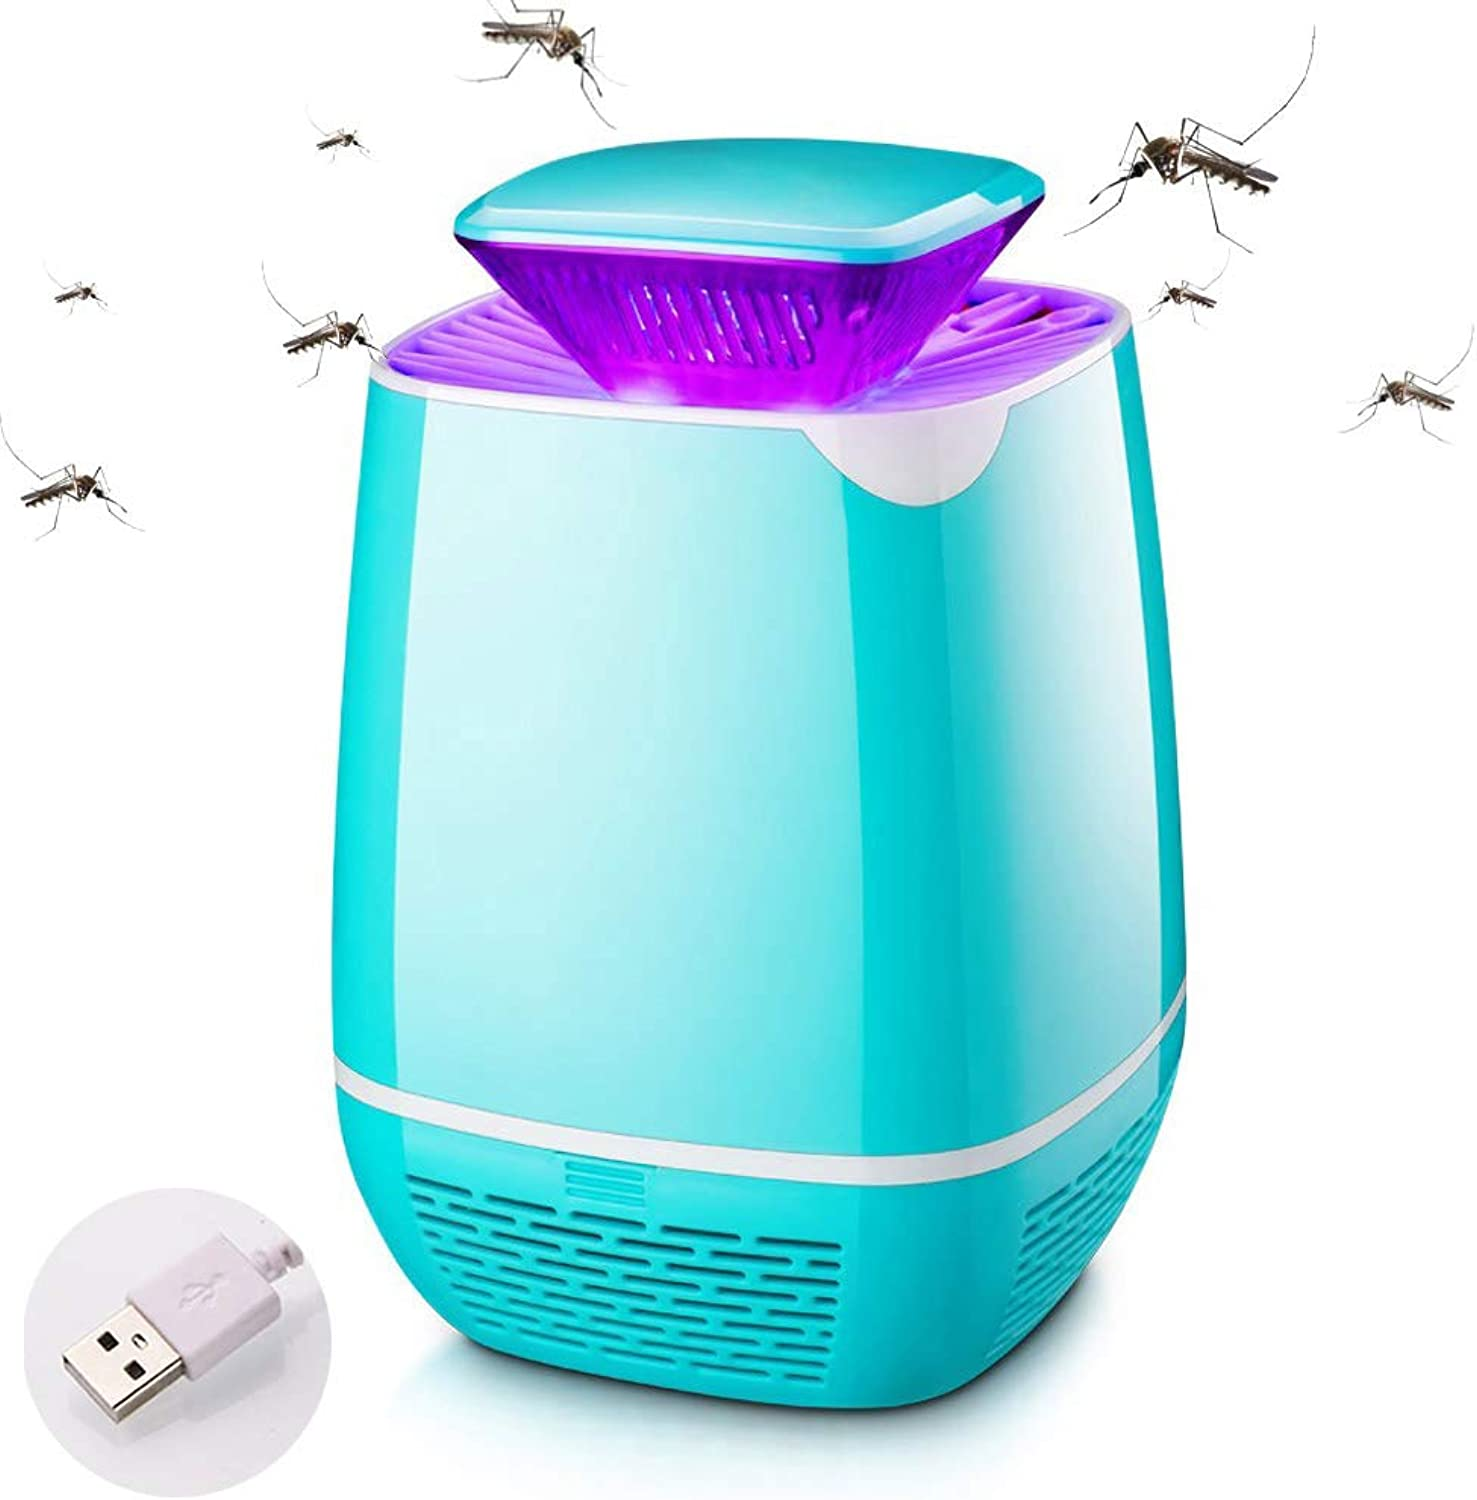 LED Mosquito Killer Lamp, USB Electronic Insect Killer,Portable Fly Killer Lamp for Indoor Outdoor Home Kitchen Garden,bluee